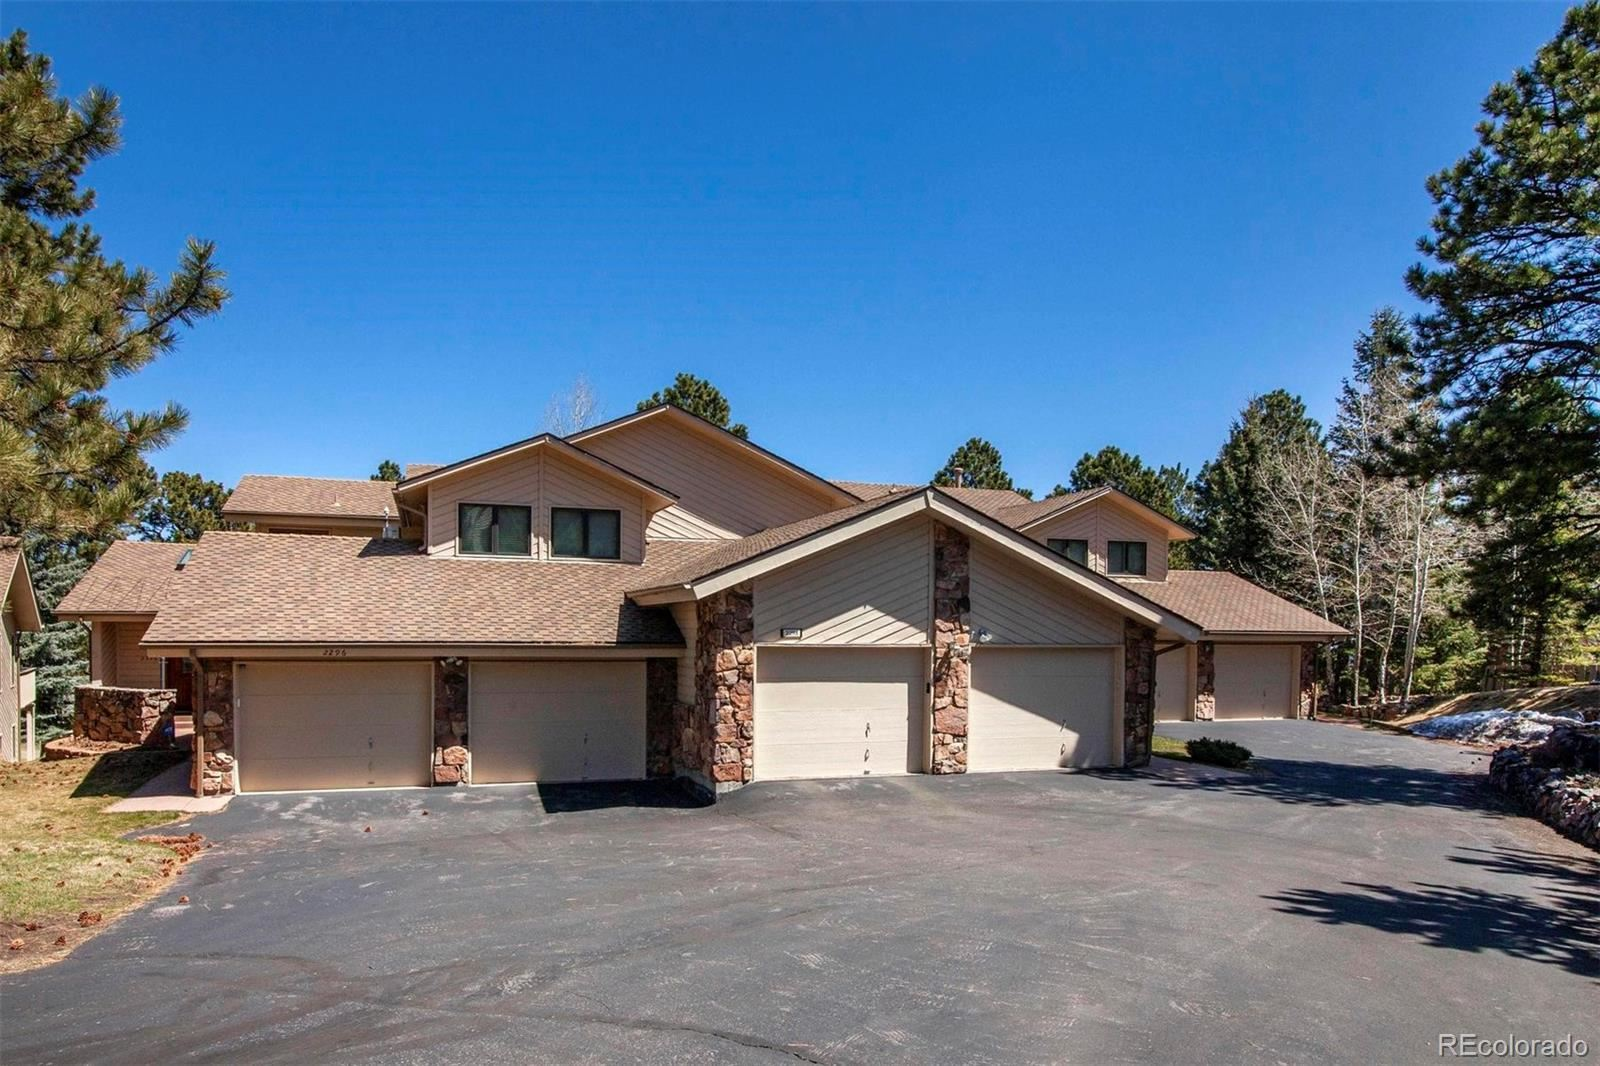 2298 Augusta Drive, Evergreen, CO 80439 - #: 7952458